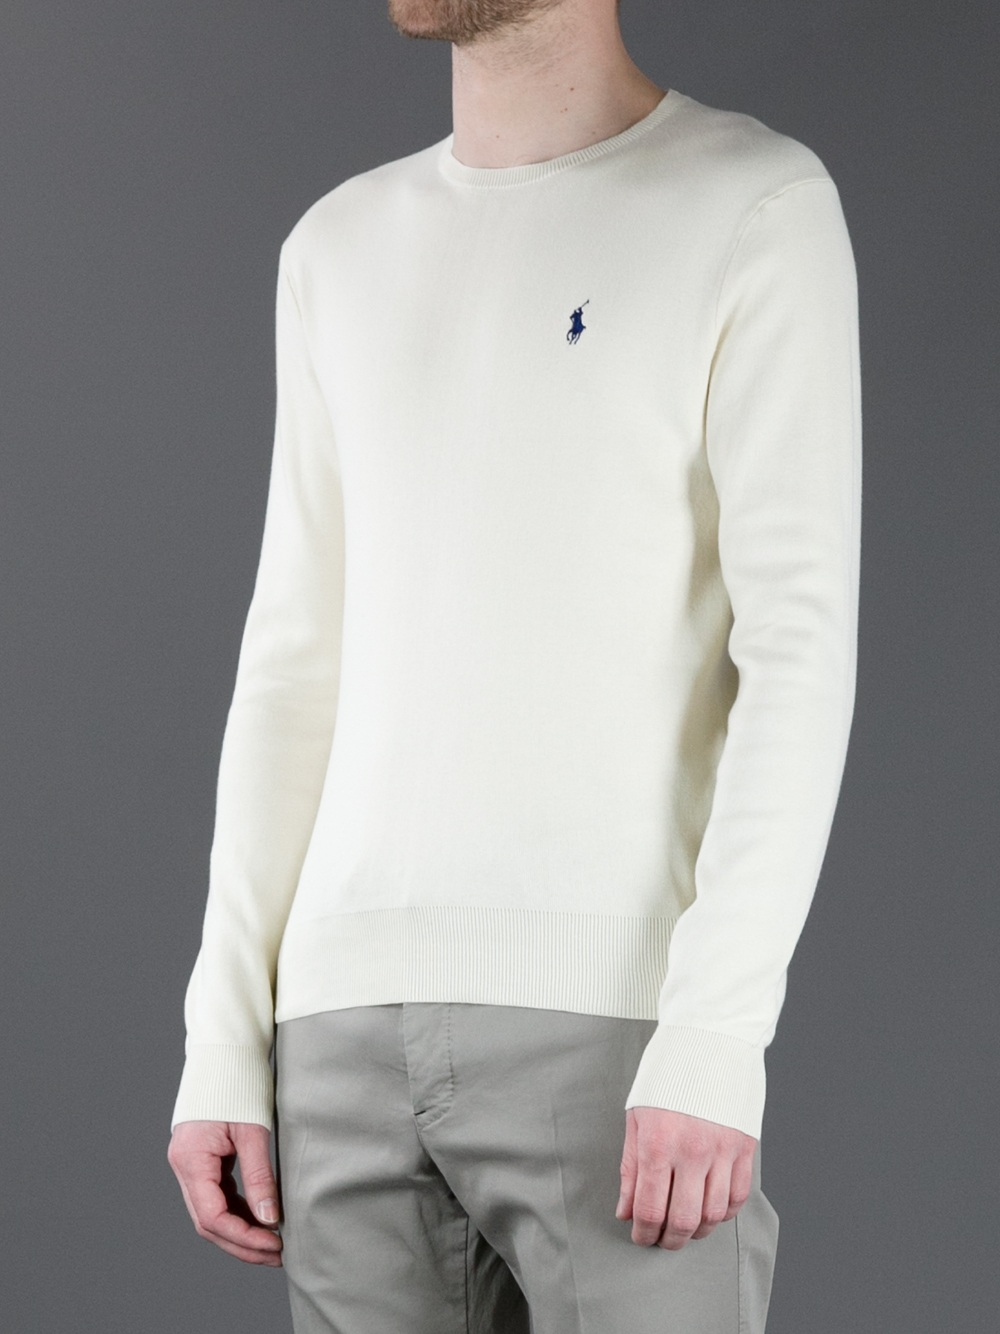 606a4d47ea158 ... france polo ralph lauren crew neck sweater in white for men lyst c5fa2  b82d6